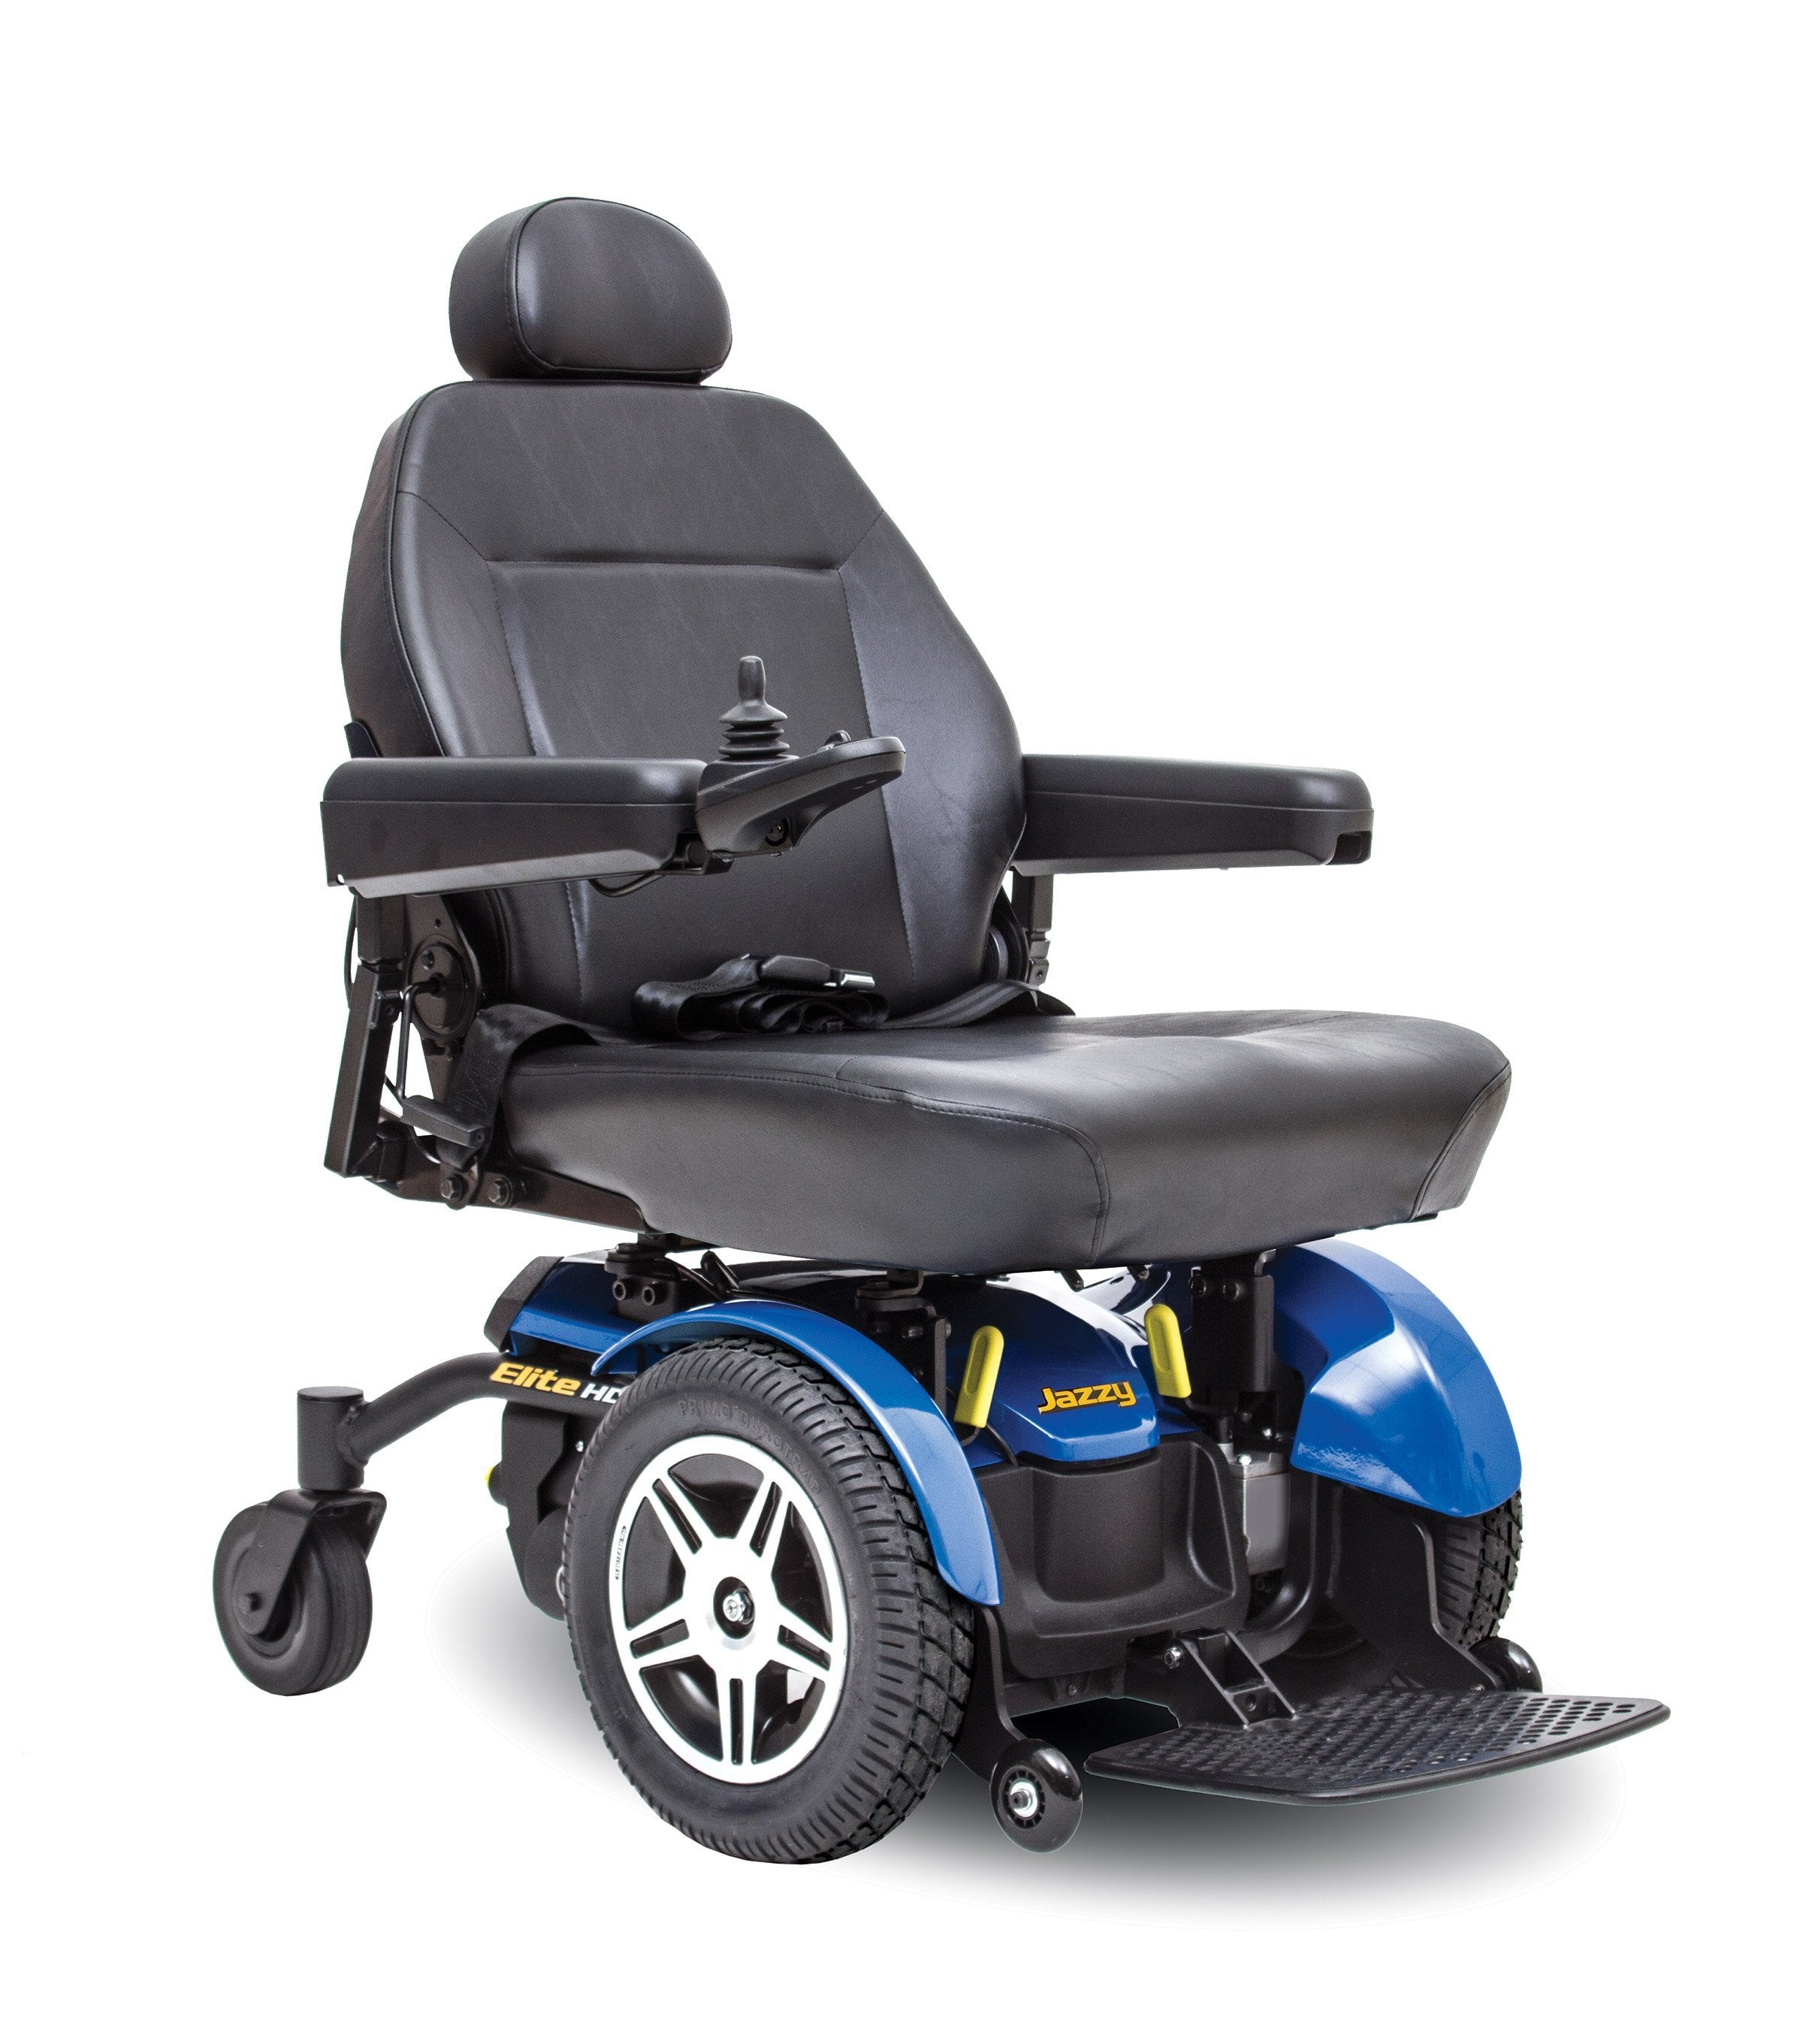 Jazzy® Elite HD heavy duty full size power wheelchair - pride - harmony home medical